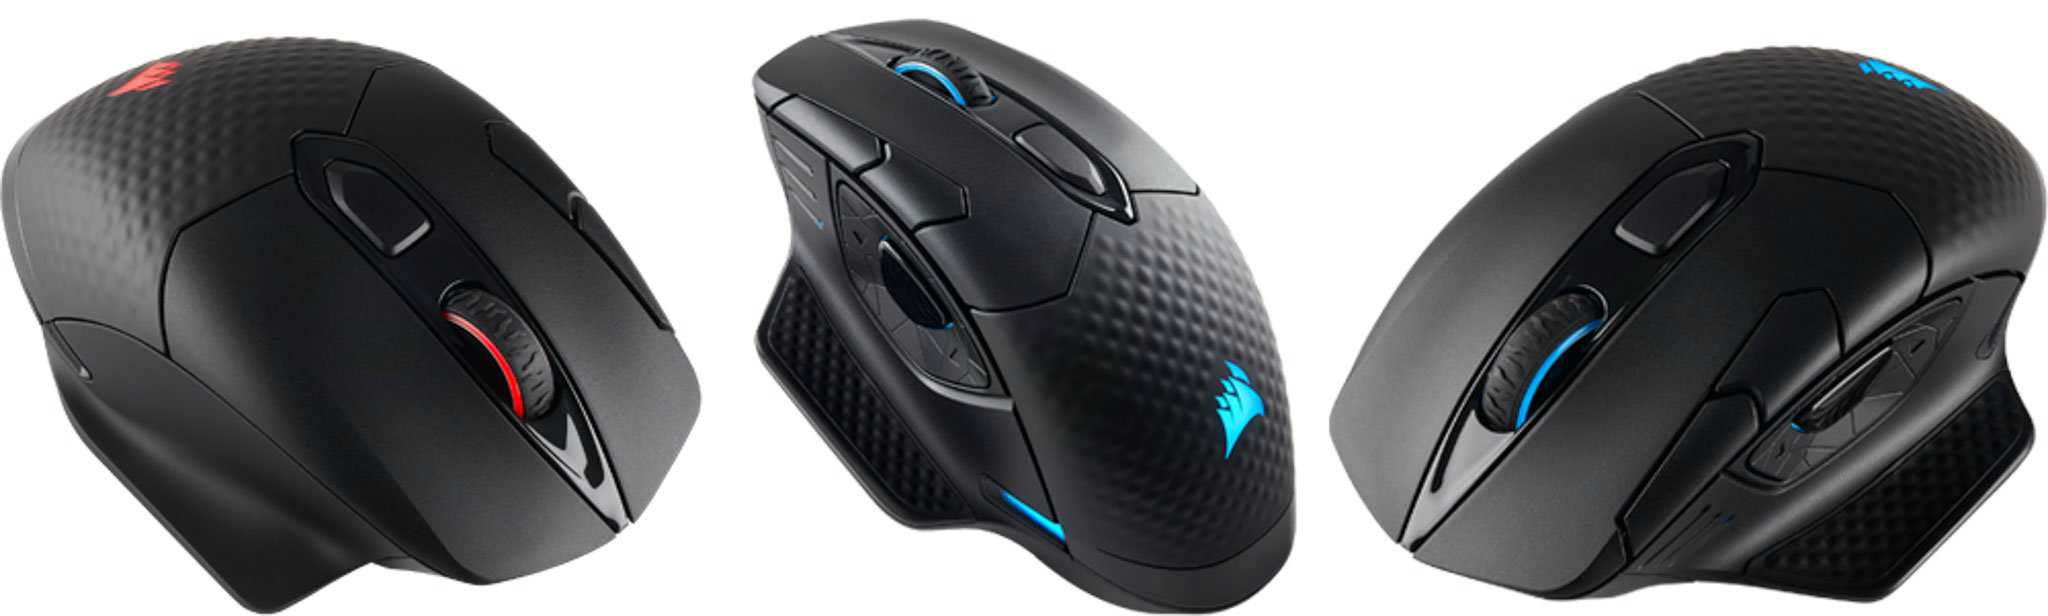 Corsair Dark Core RGB Wireless Mouse